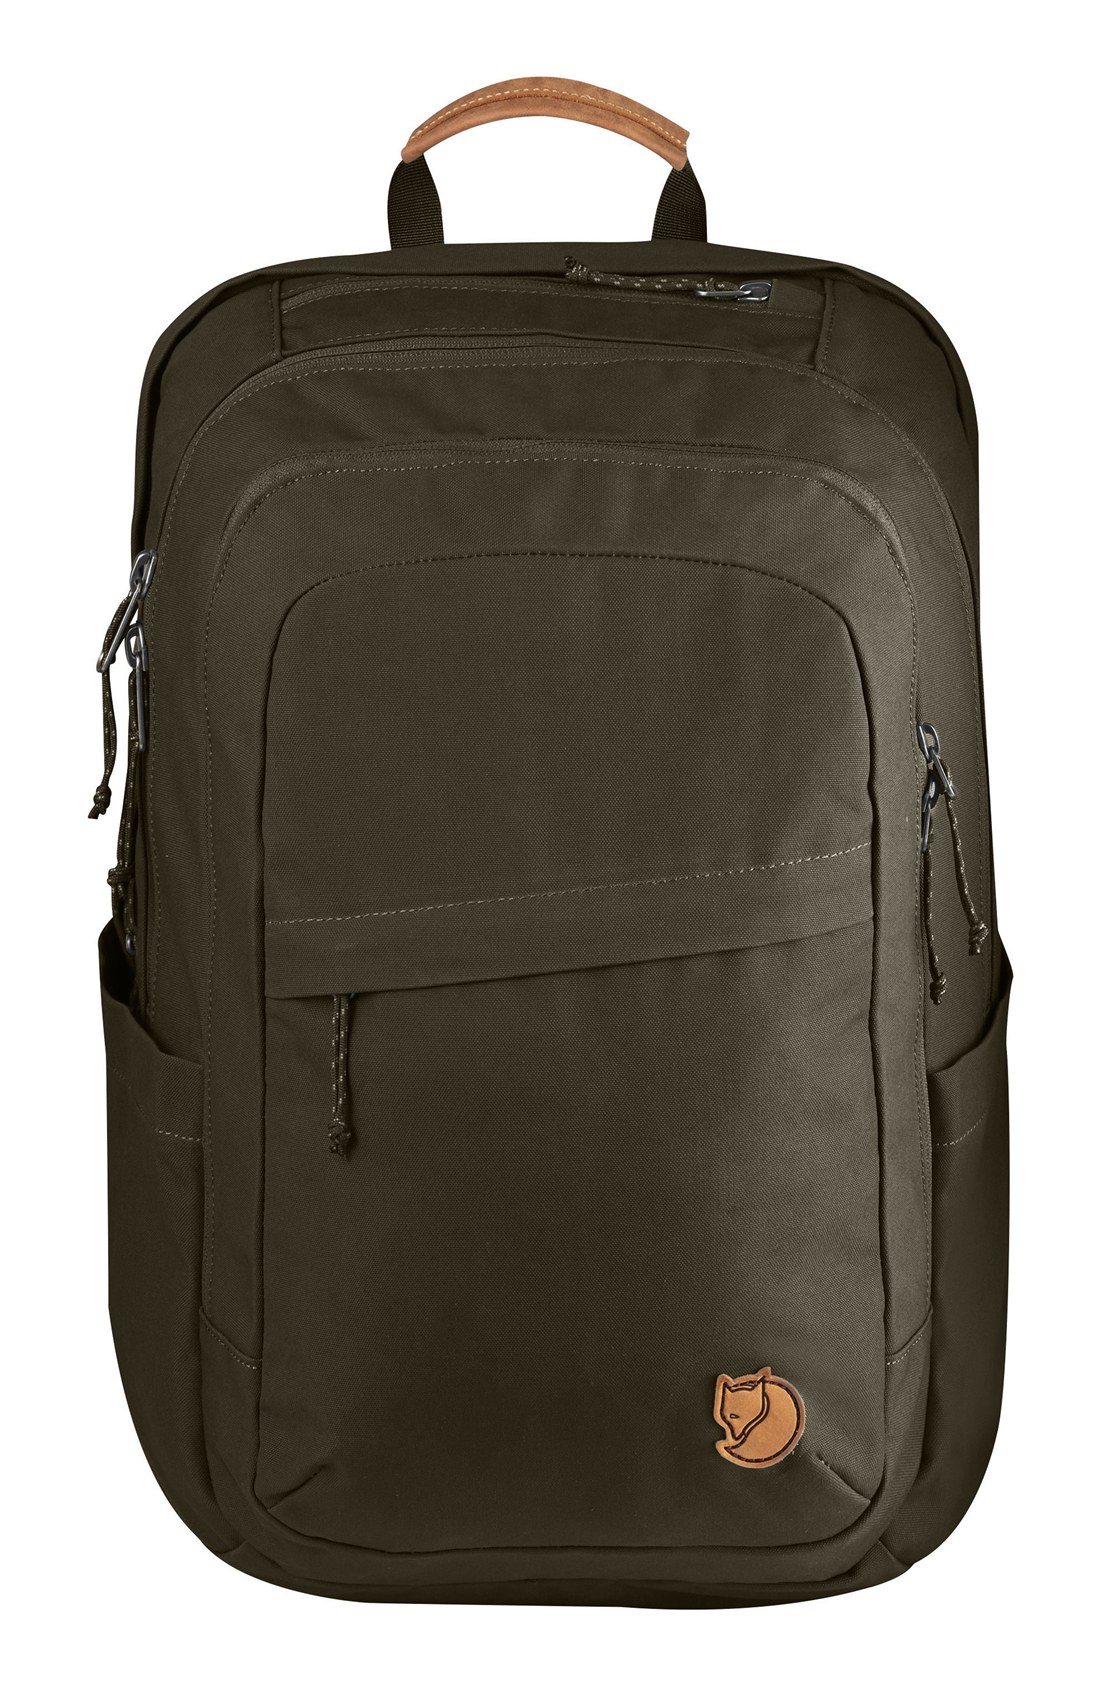 Mens Backpacks For School SU5sGykn